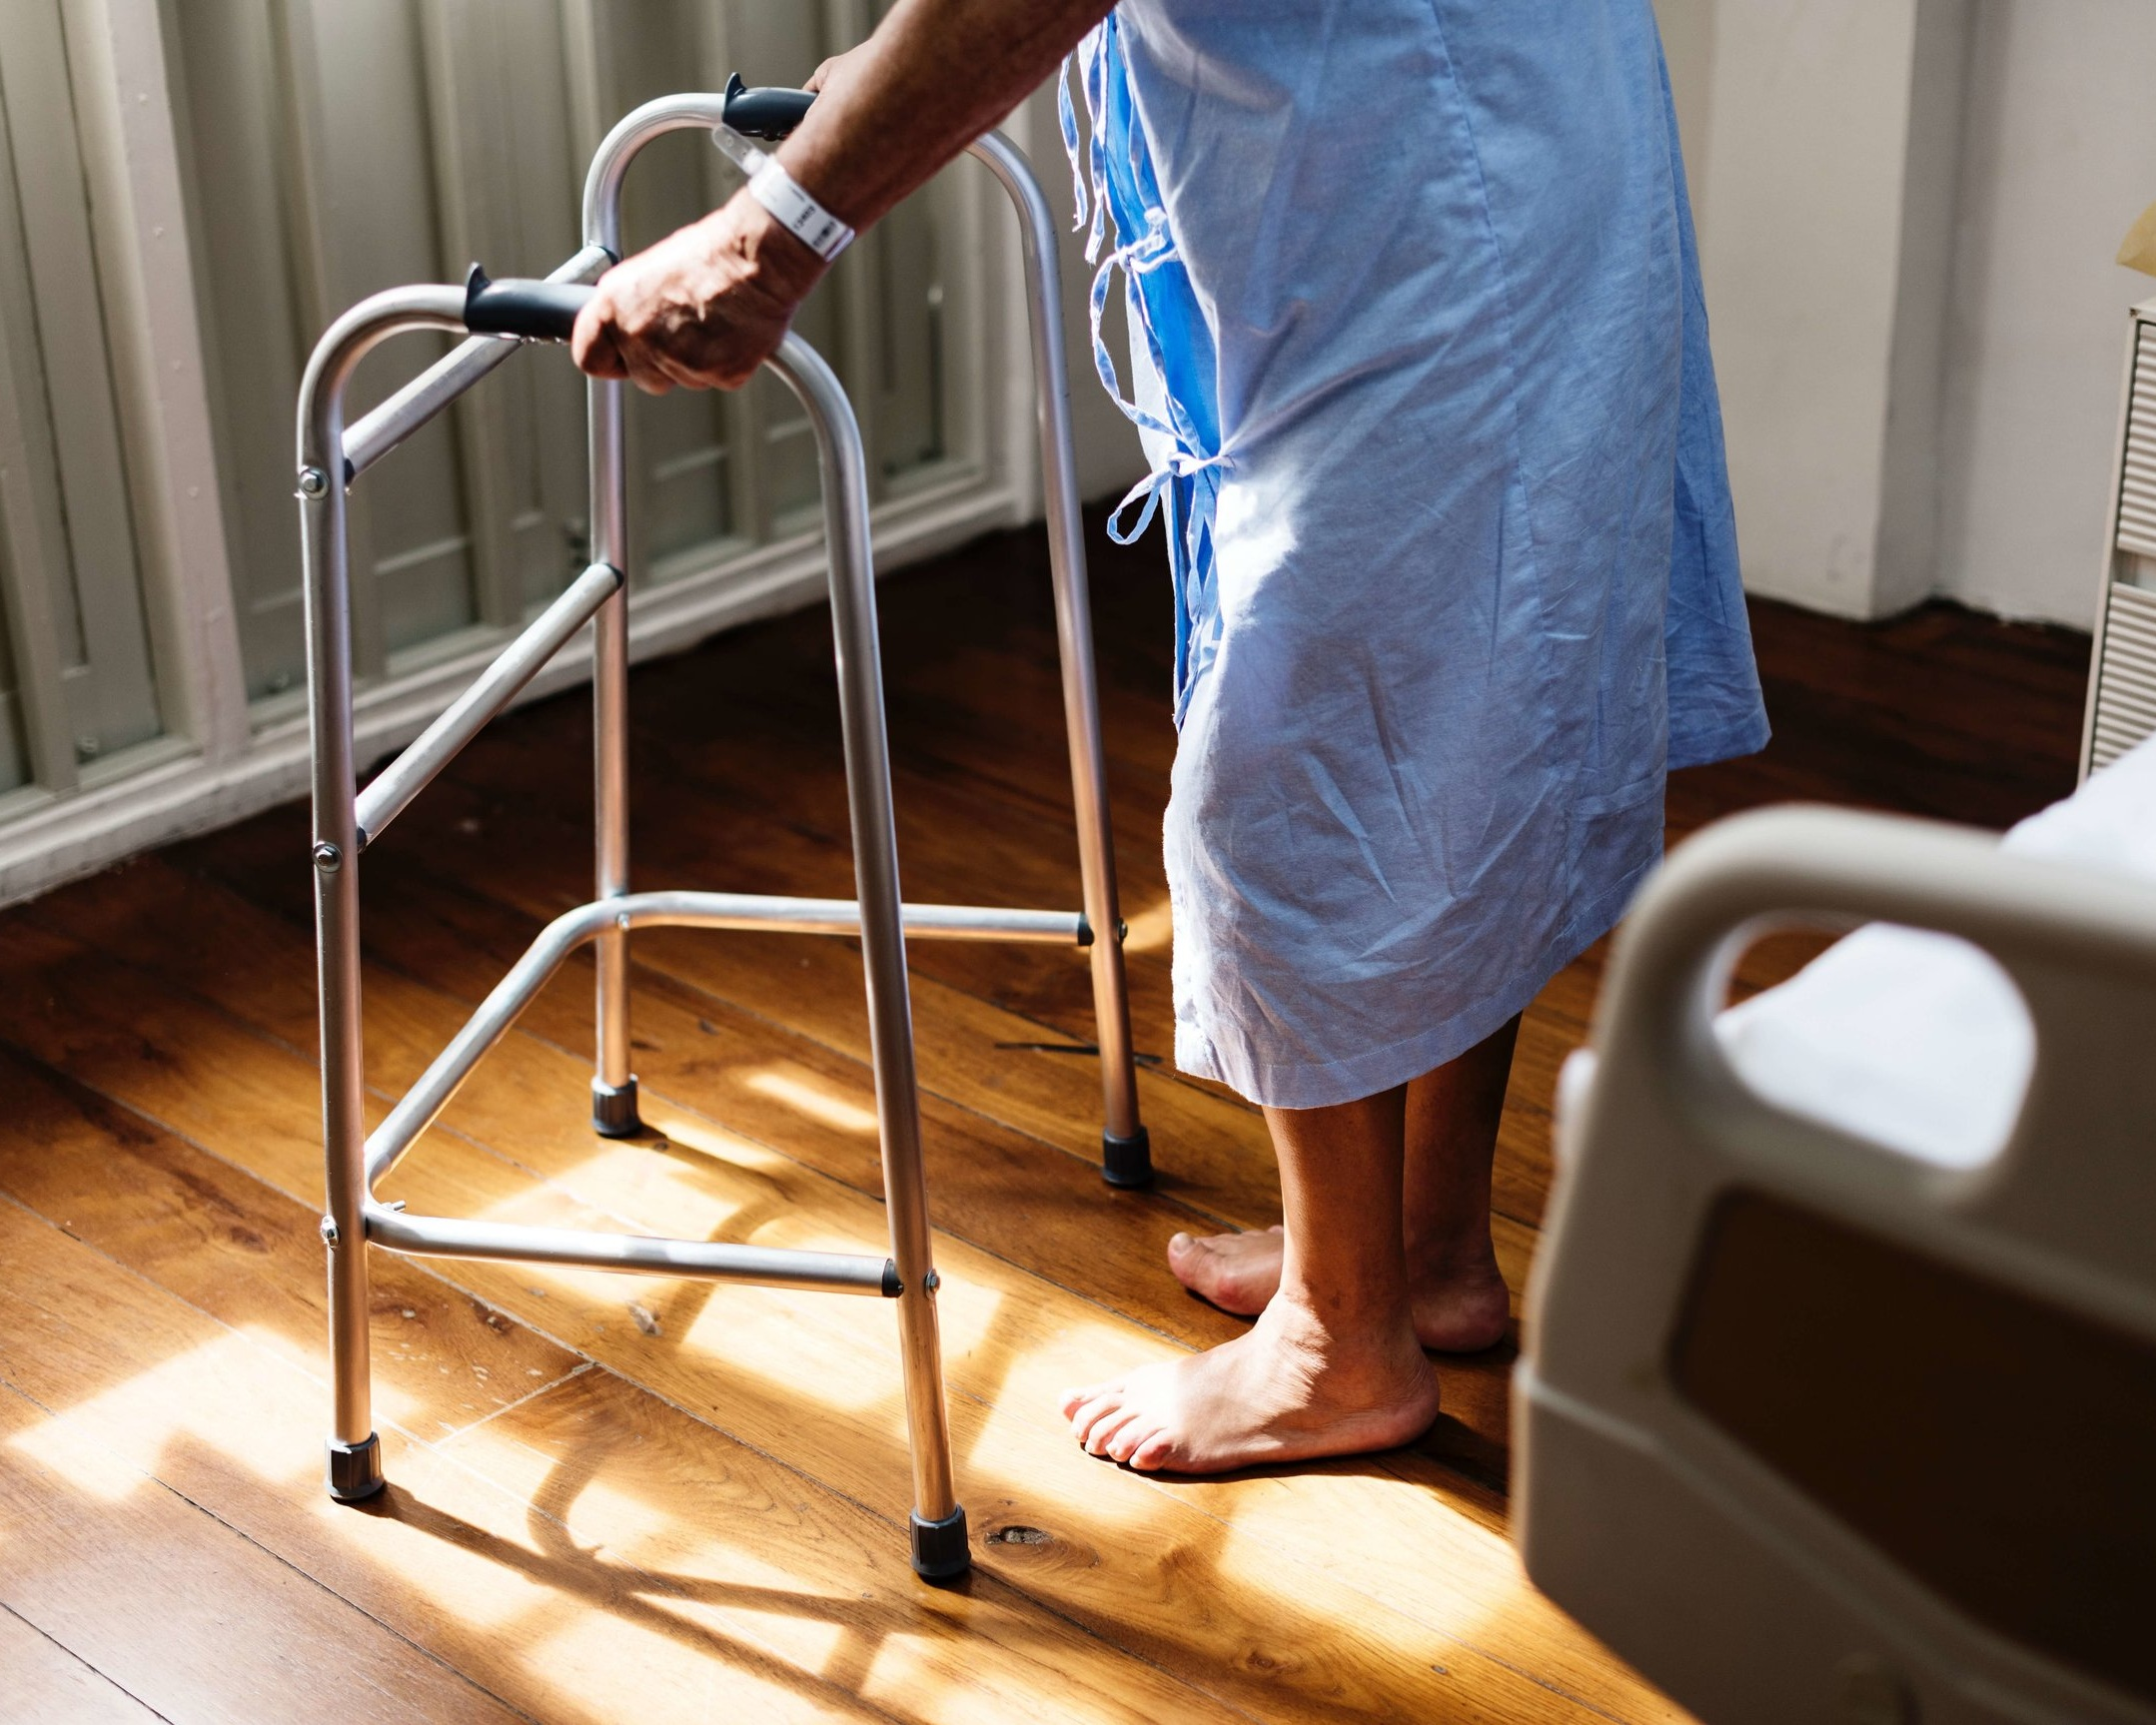 elderly person using a walker at the hospital